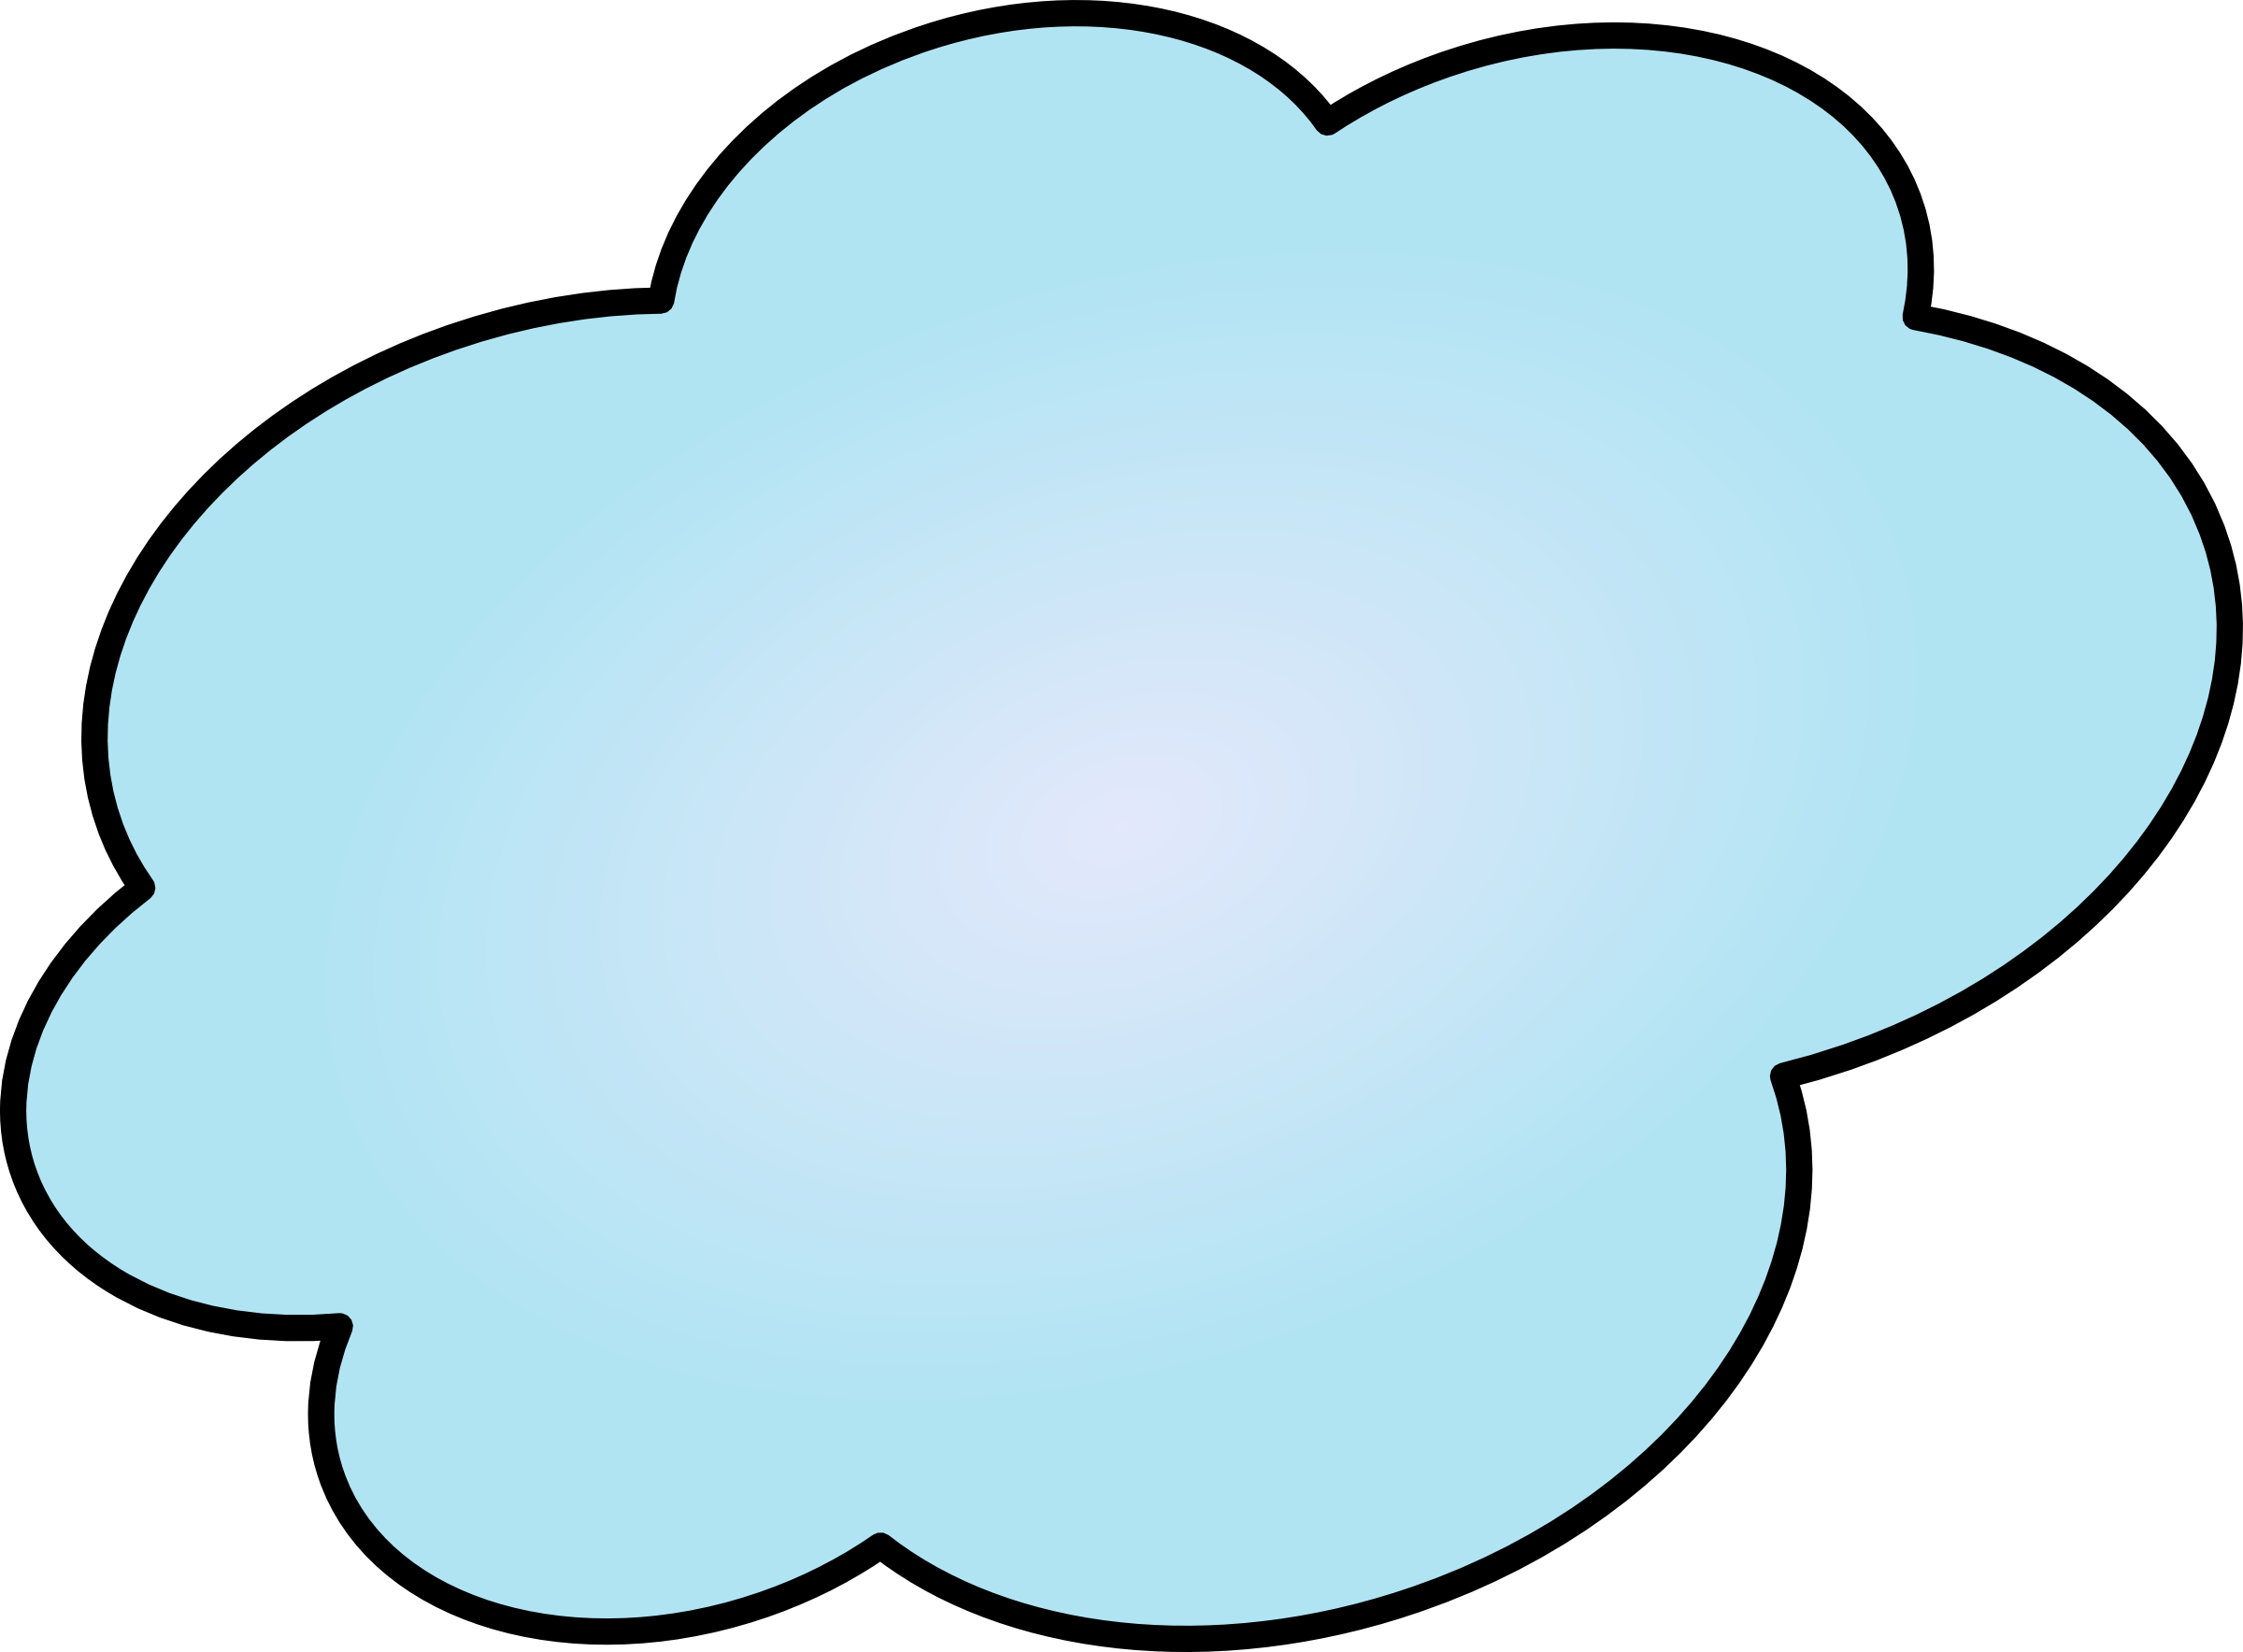 transparent download Clouds clipart. Image of cloud png.